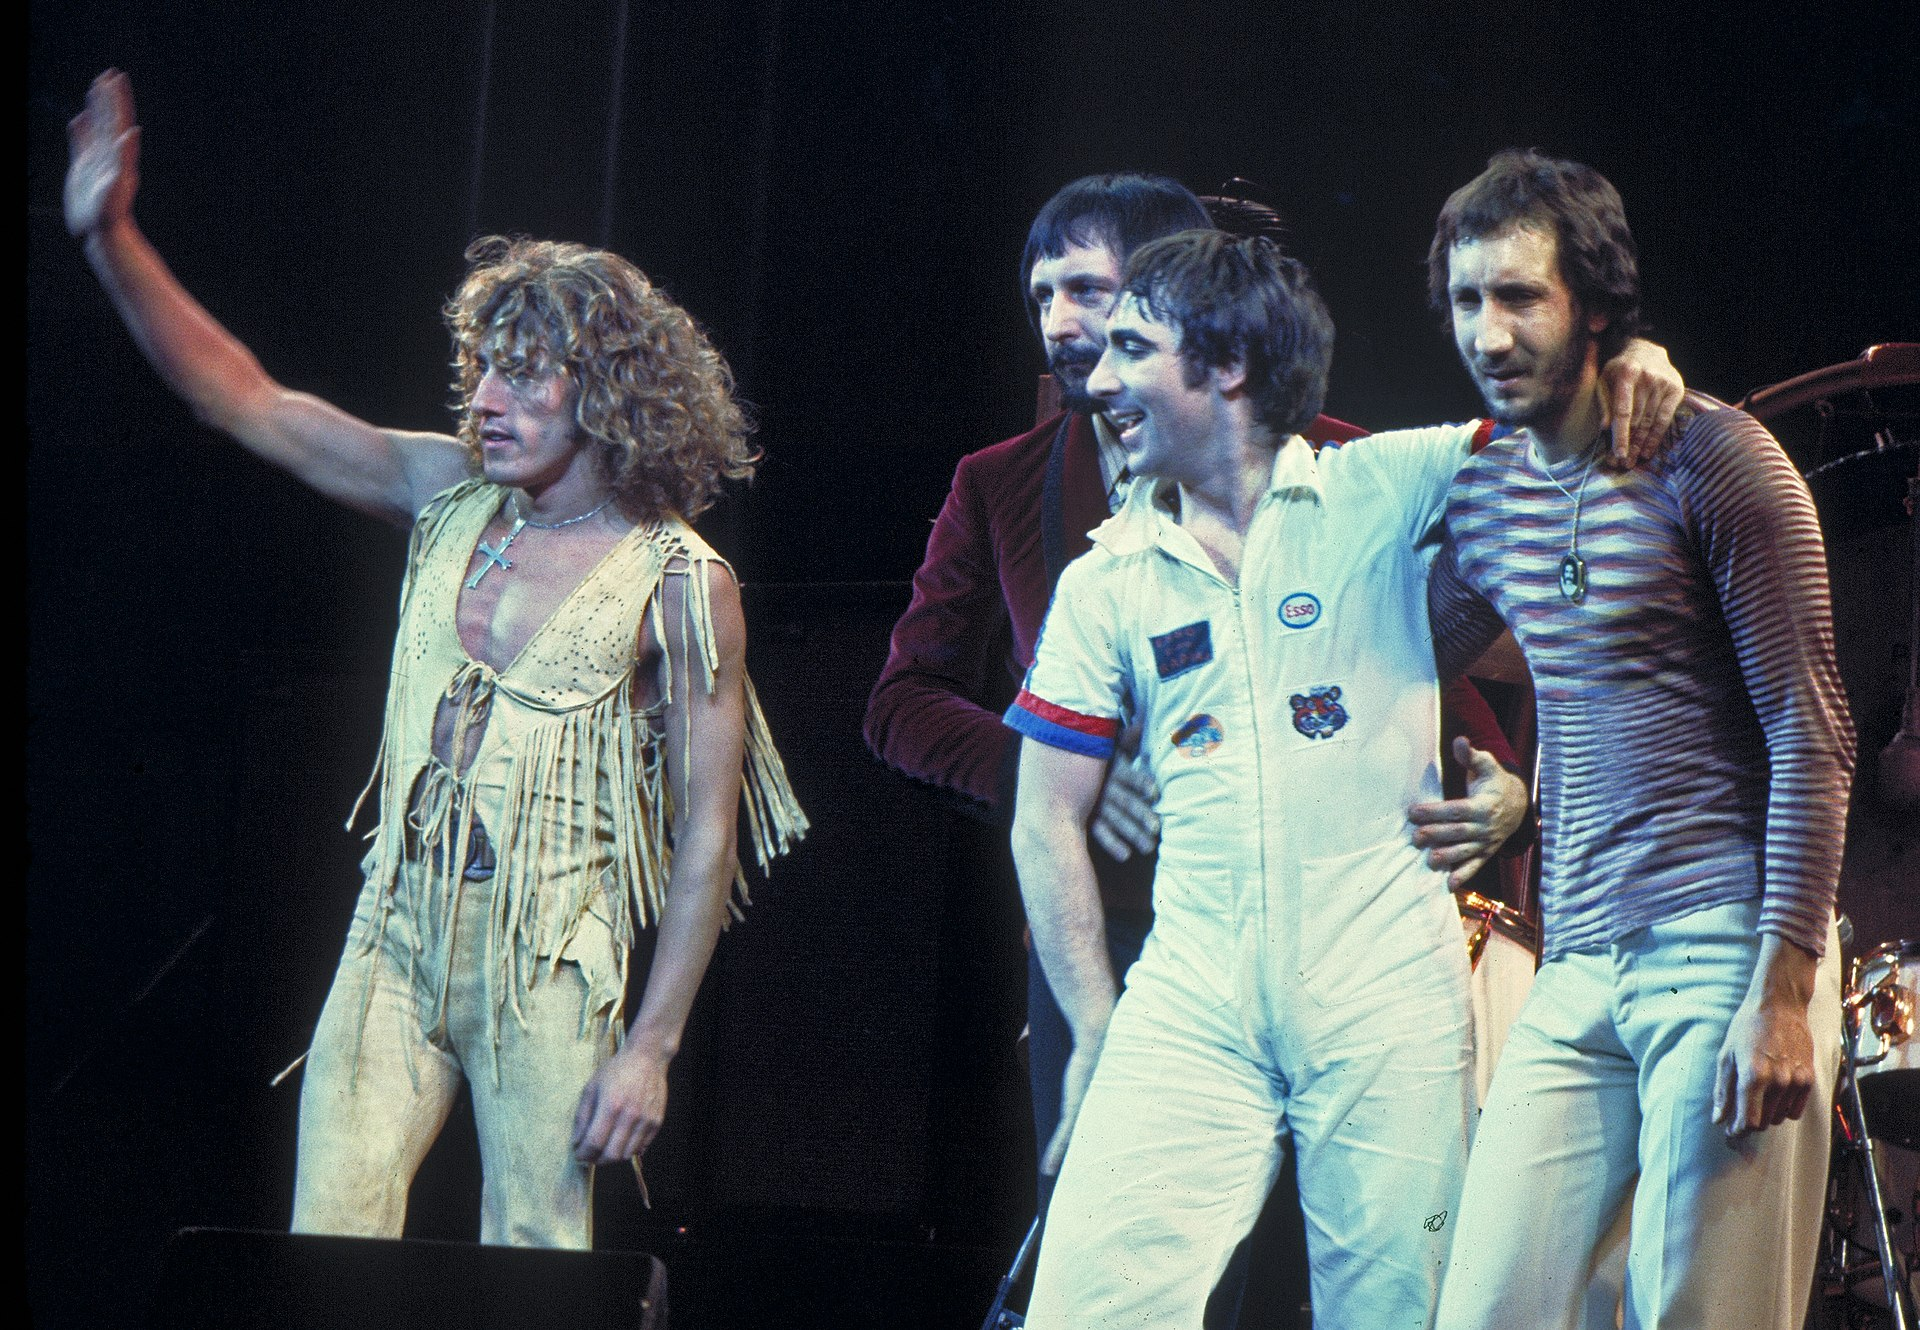 1920px Who 1975 20 Things You Never Knew About The Who